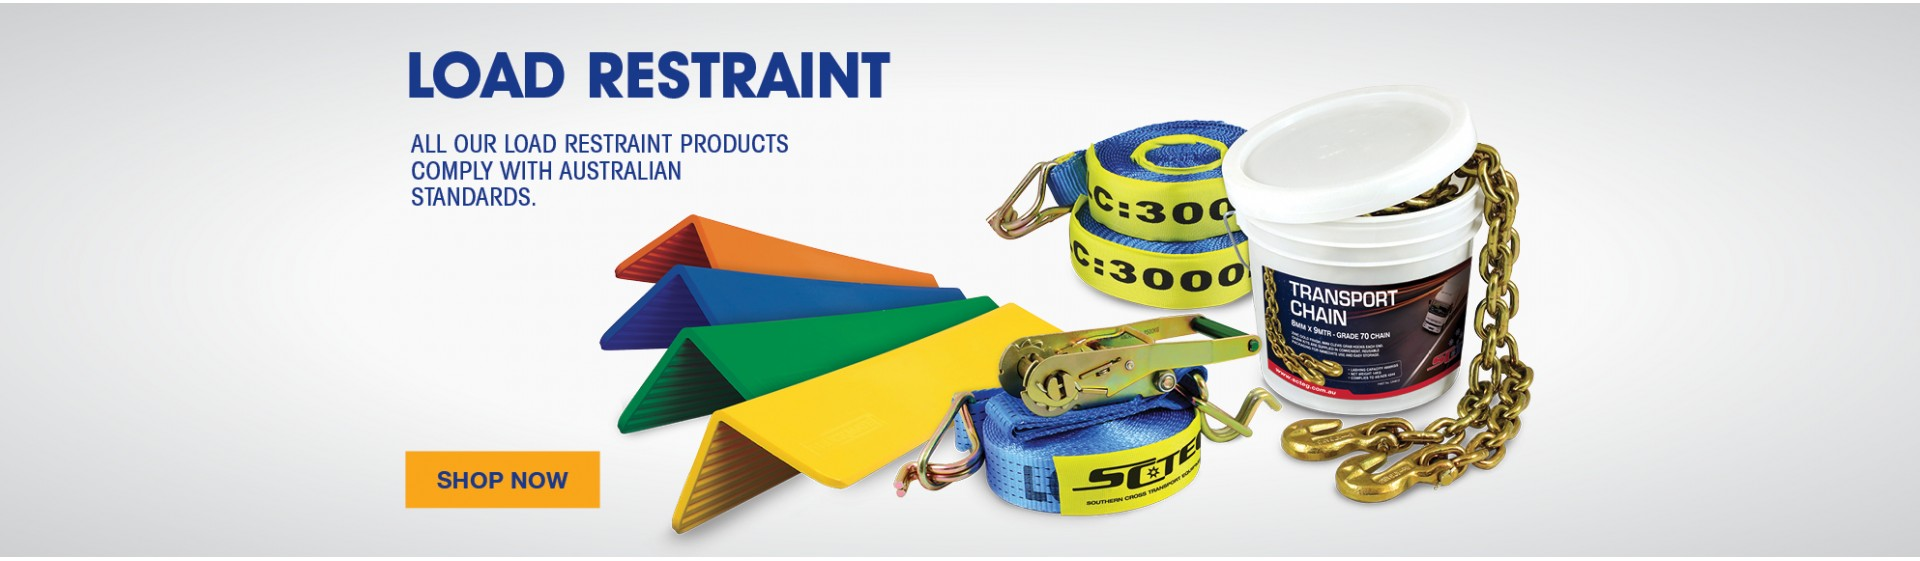 Load Restraints Strap Chain Pallet angle